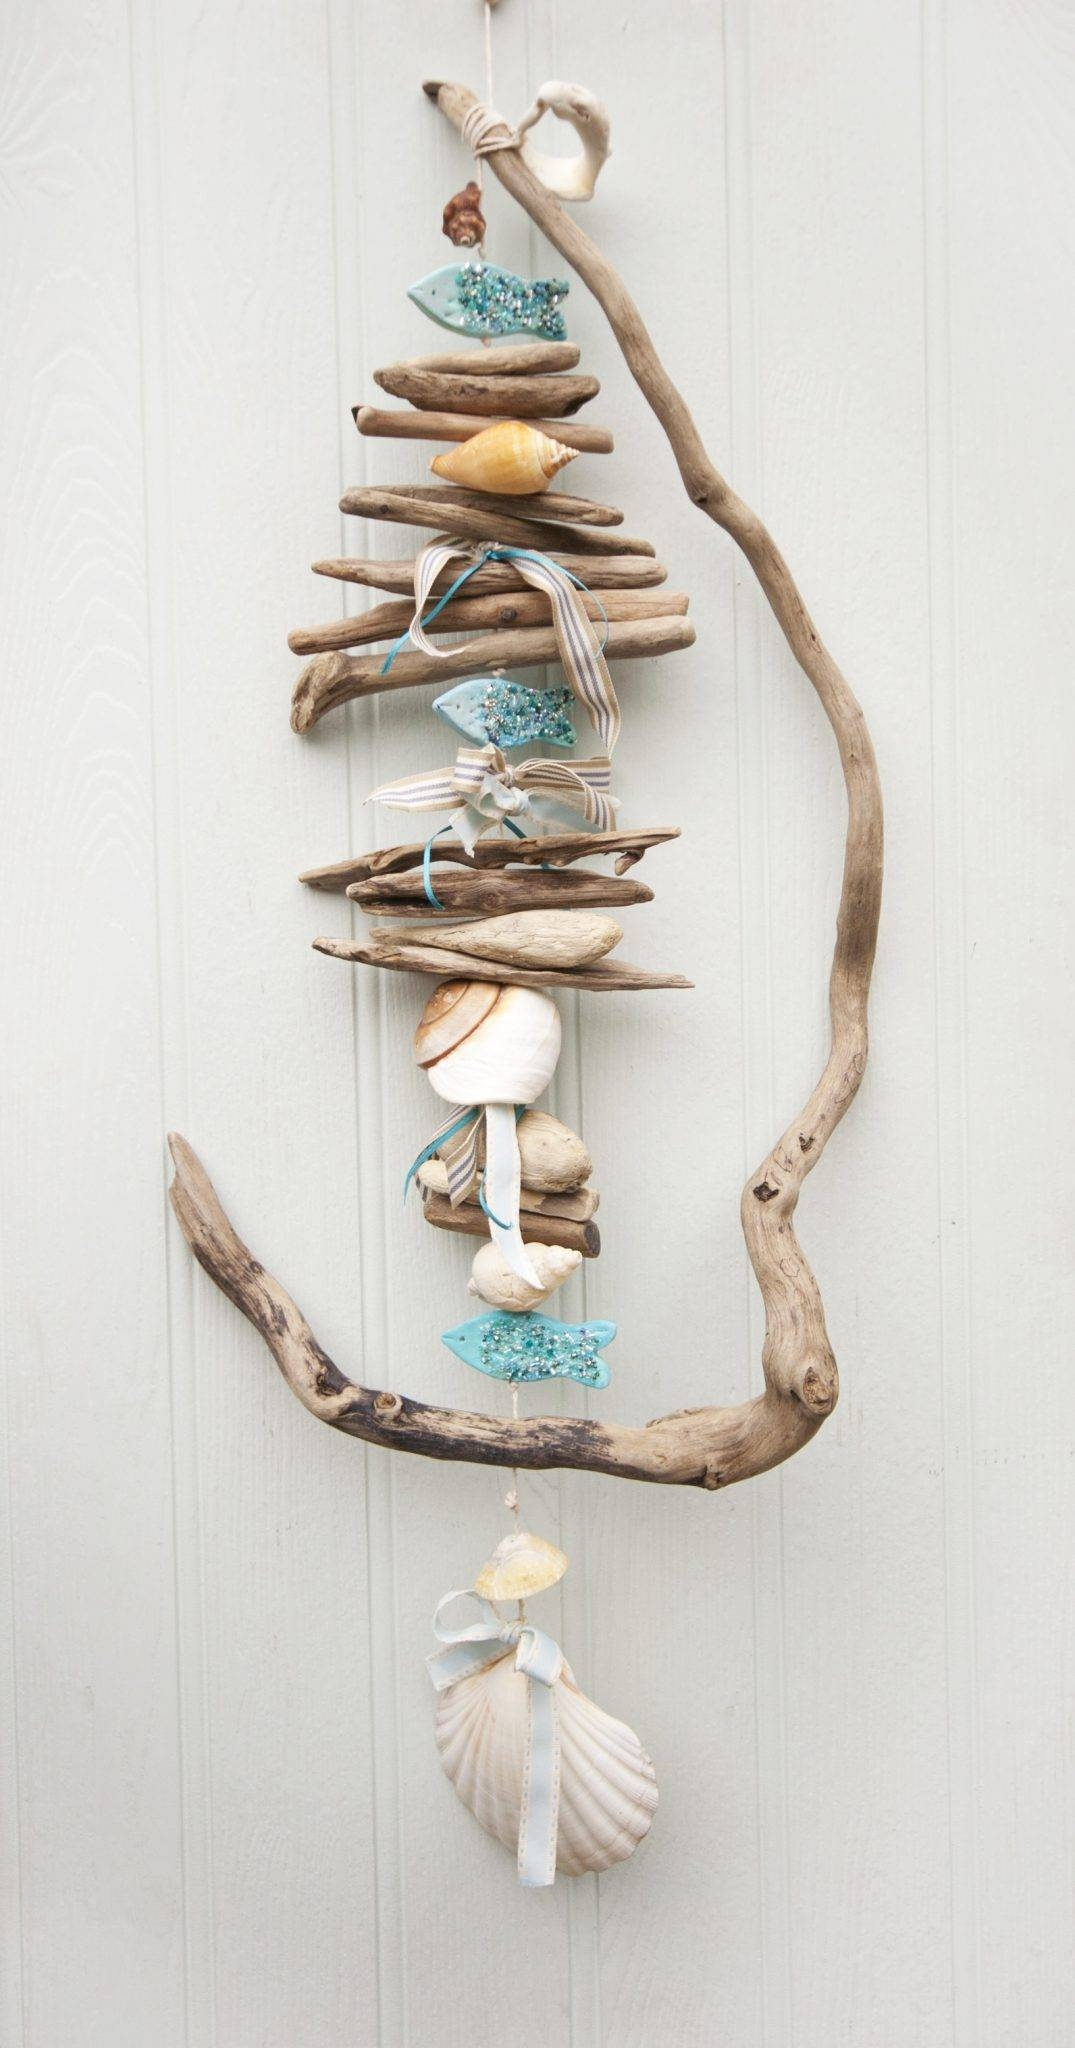 Home – Driftwood Dreaming Inside Most Recent Driftwood Wall Art For Sale (View 17 of 30)